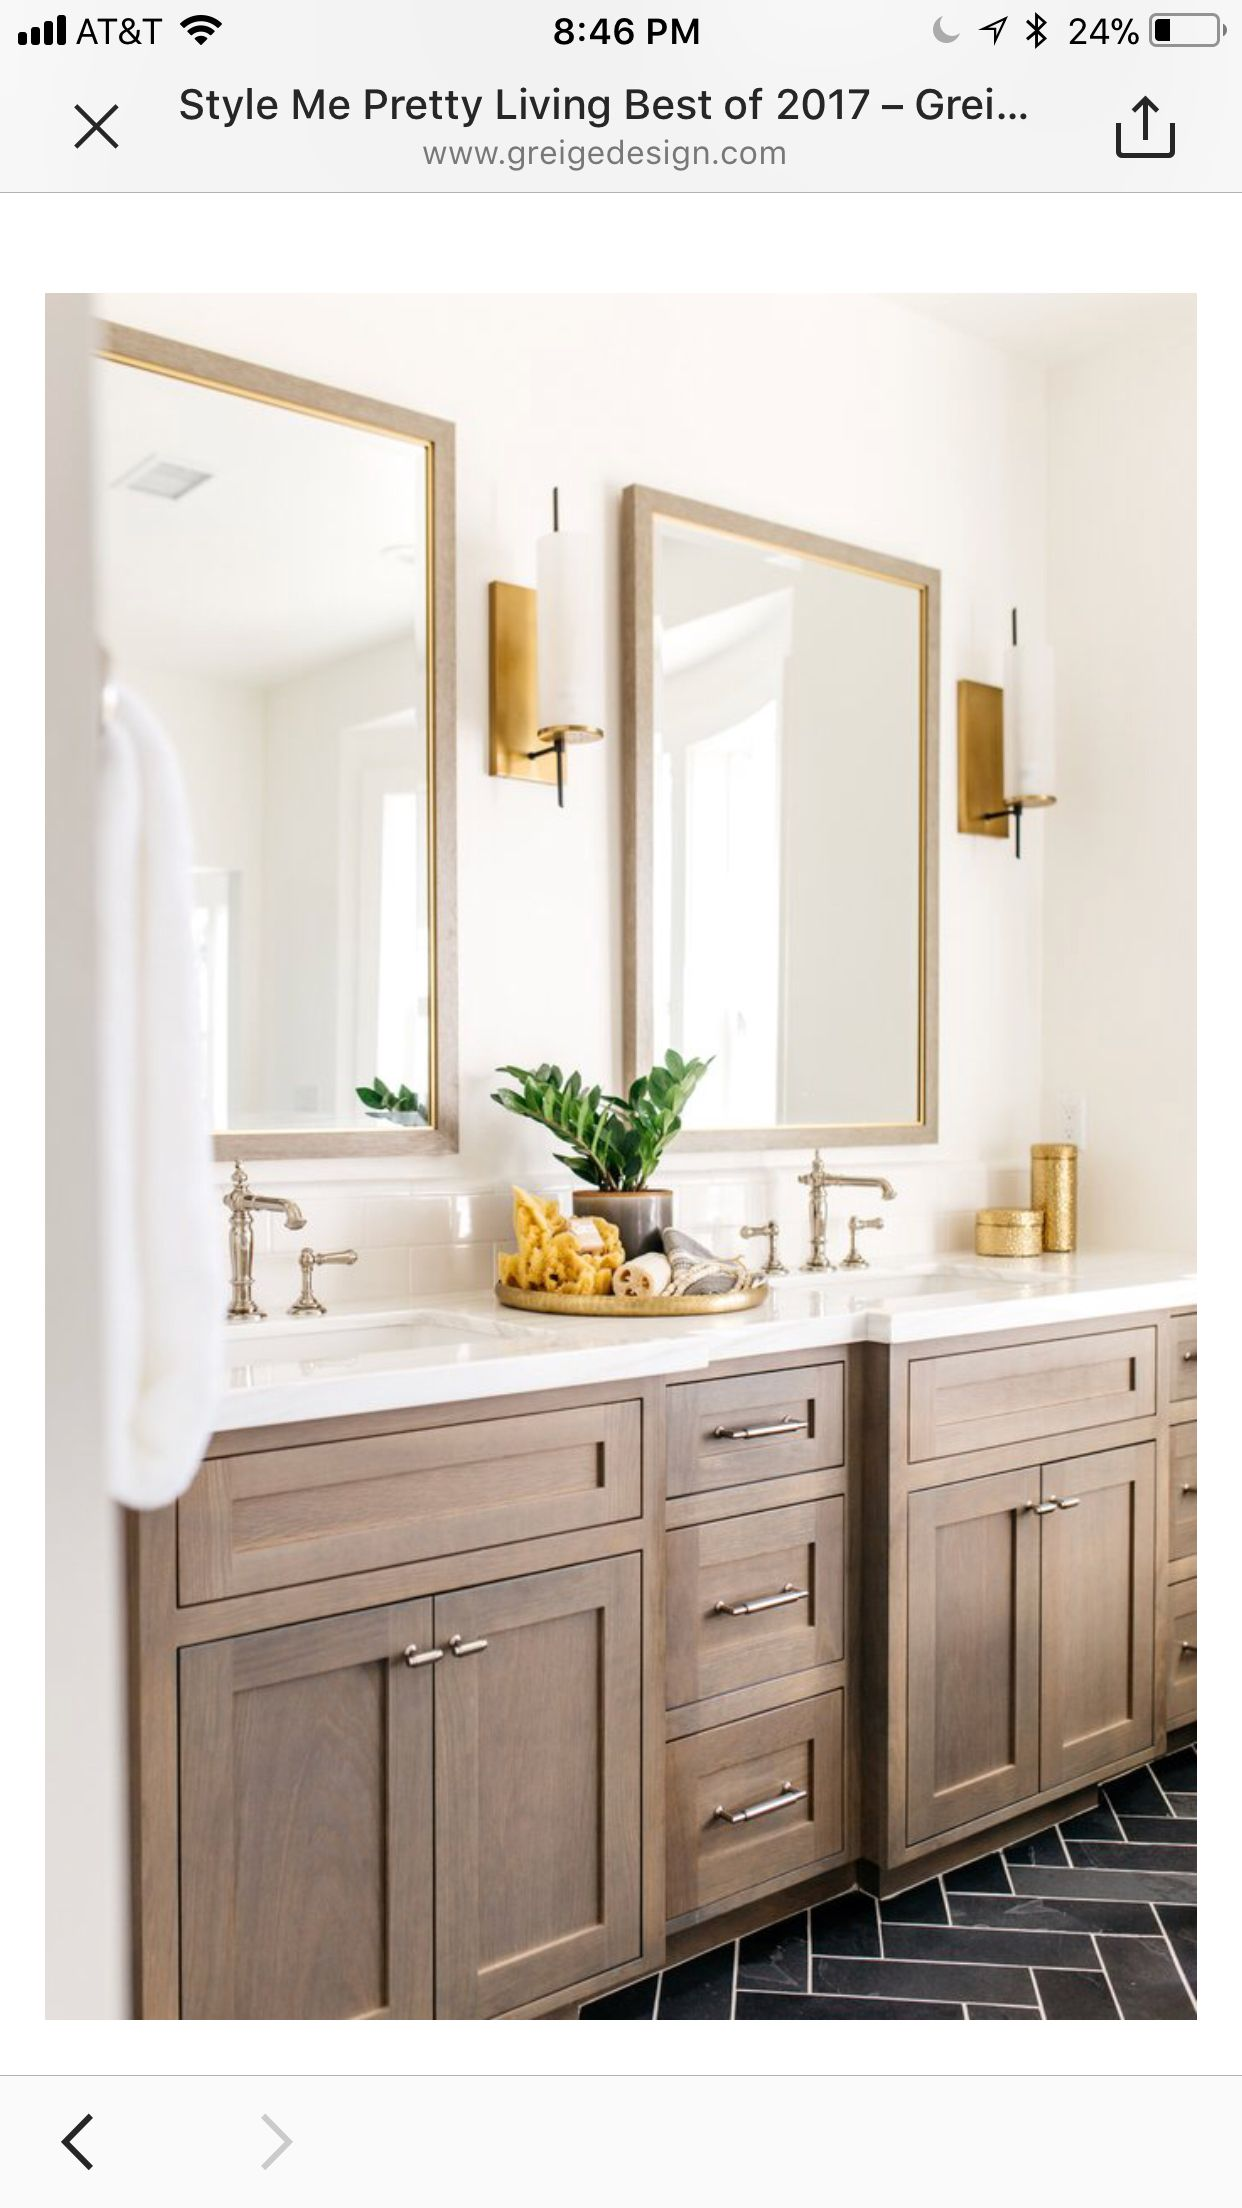 Pin by Jody Justice on Bathrooms | Pinterest | House goals, Bathroom ...